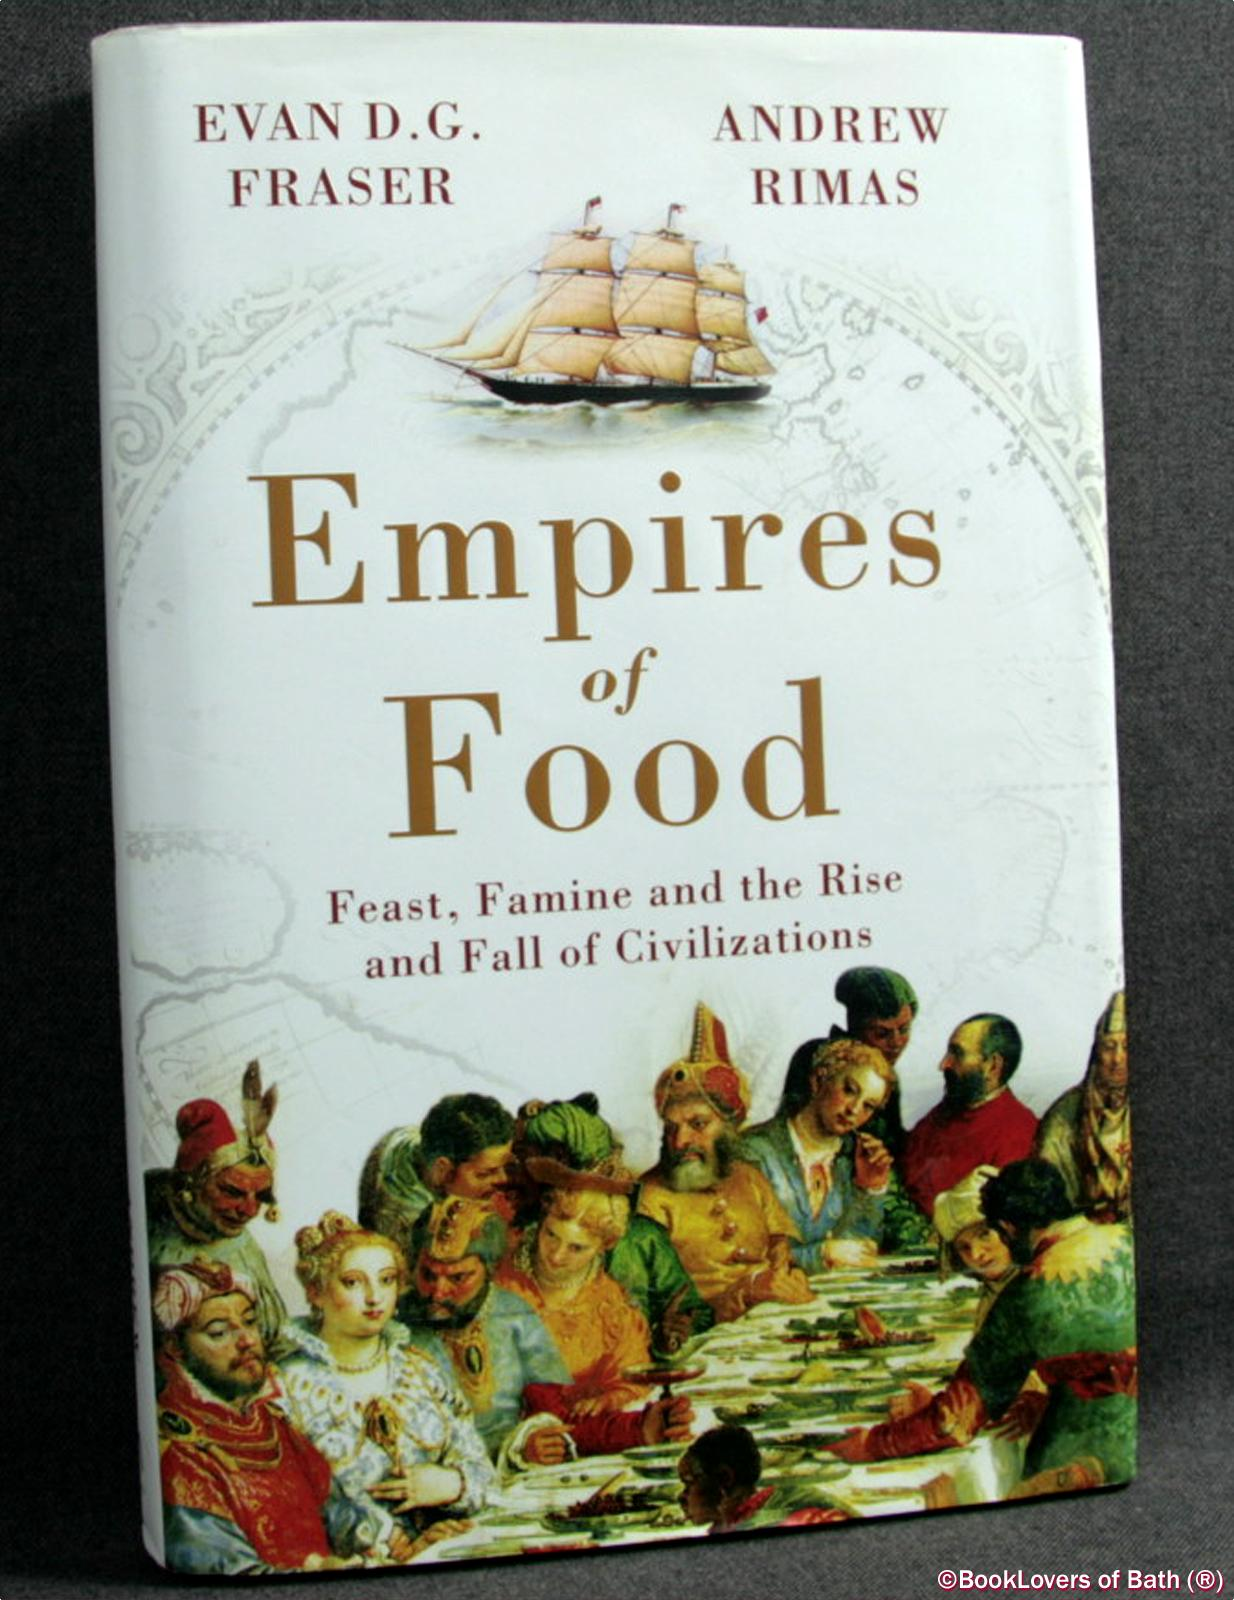 Empires of Food: Feast, Famine and the Rise and Fall of Civilizations - Evan D. G. Fraser & Andrew Rimas